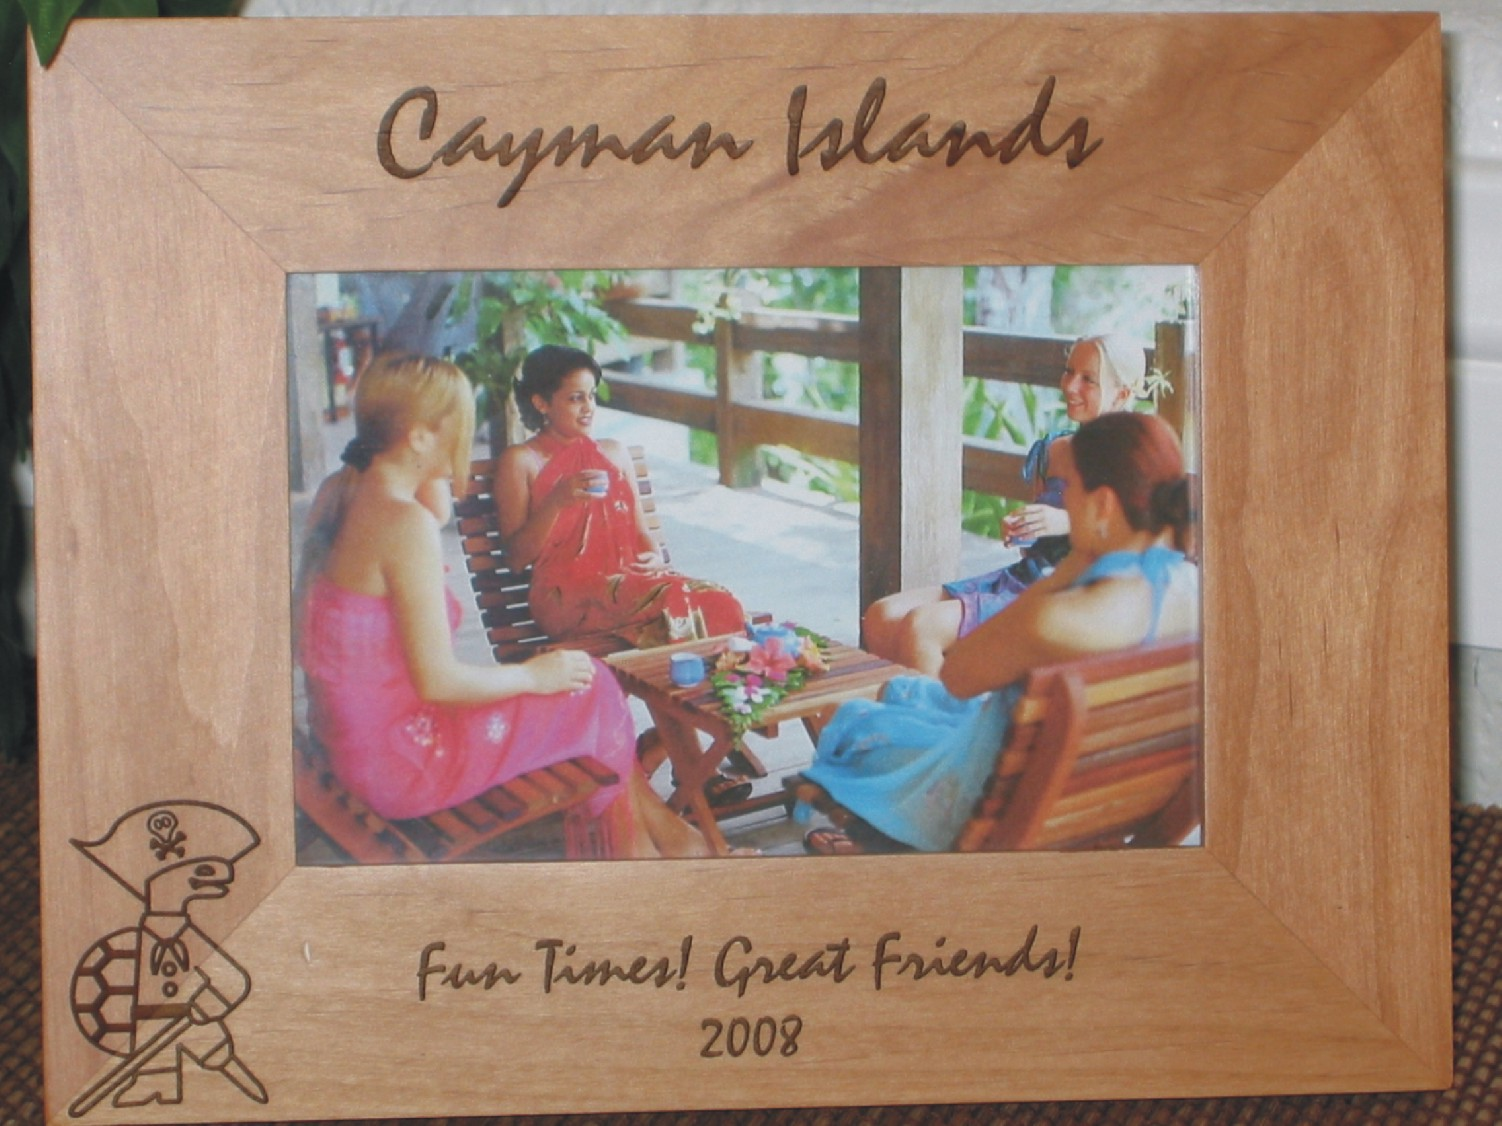 Caribbean Island Picture Frames - Personalized Island Picture Frames